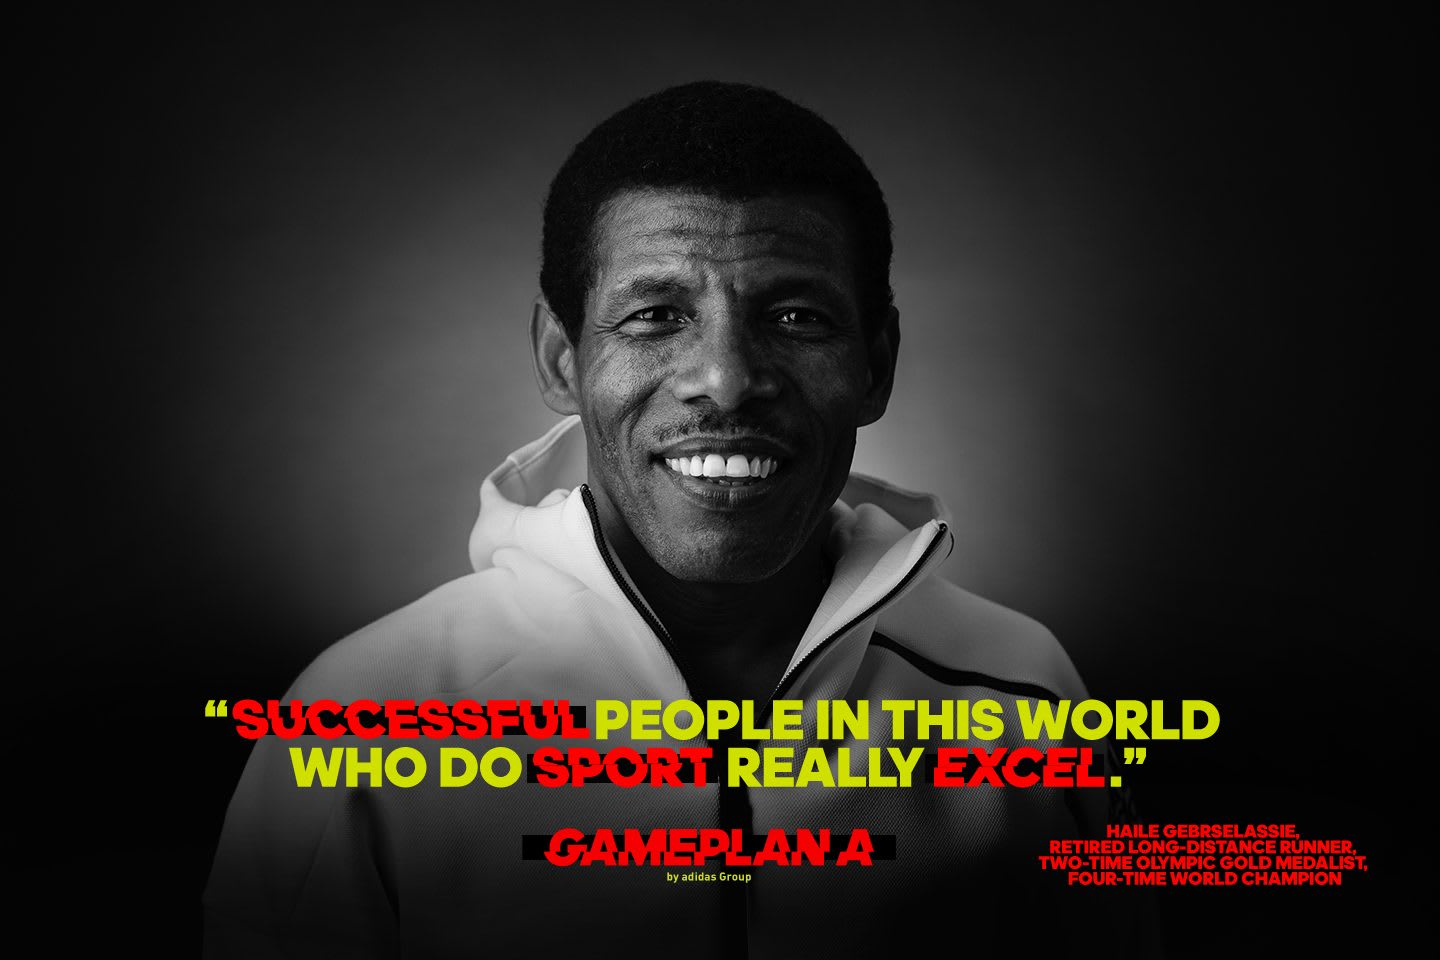 haile gebrselassie distance runner quote